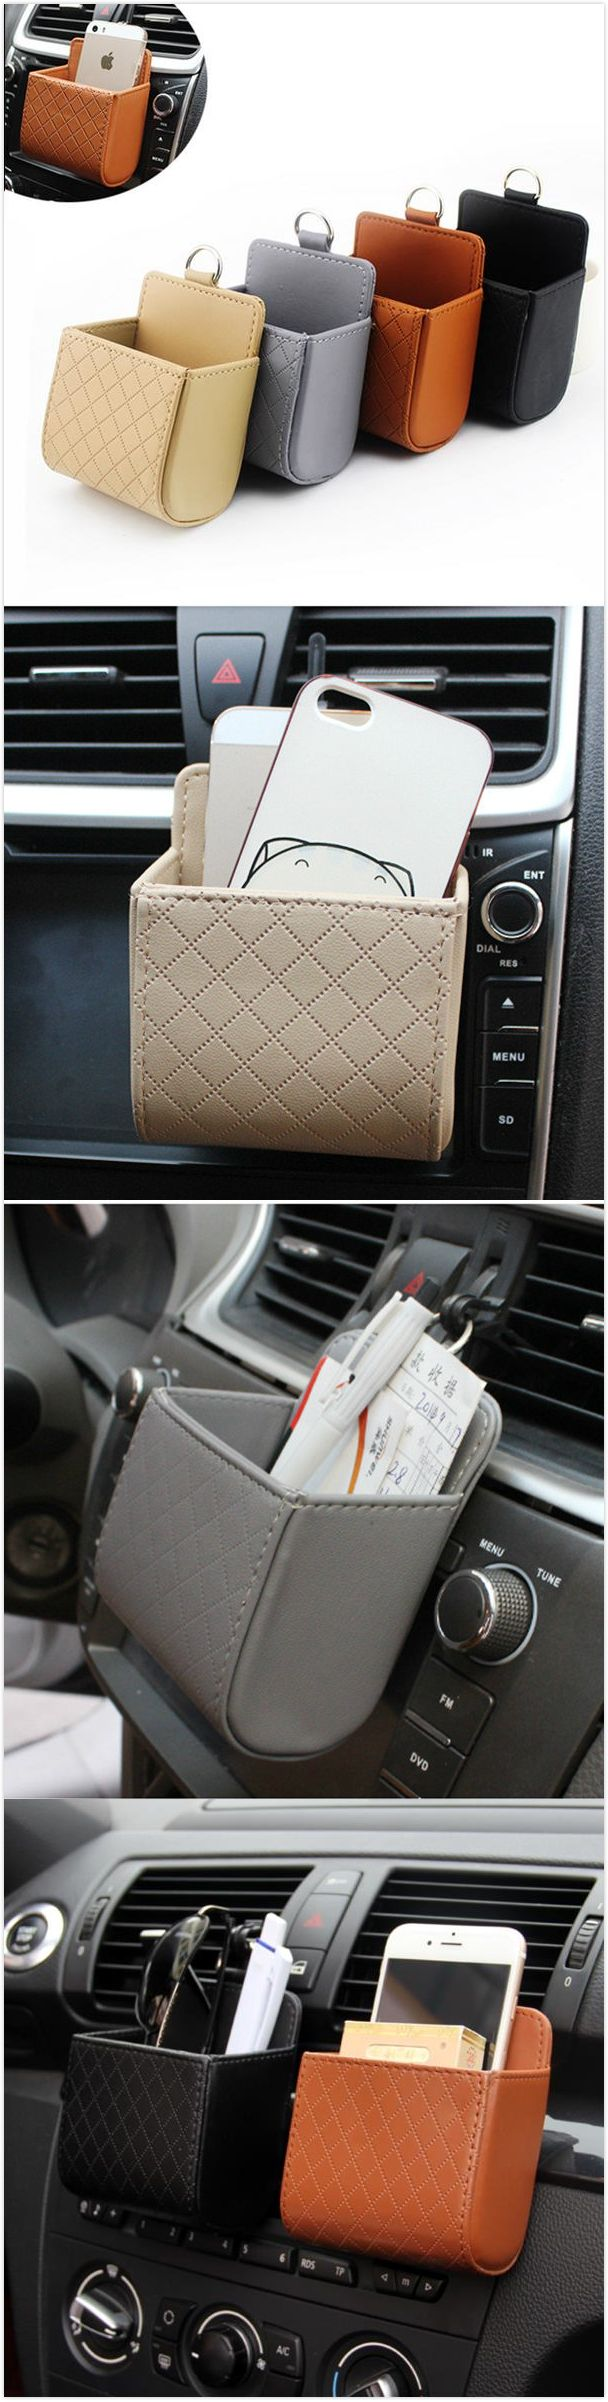 [$ 4.28] Auto Air Vent Car Storage Bag Multi-functional Pu Phone Bag Ditty Bag